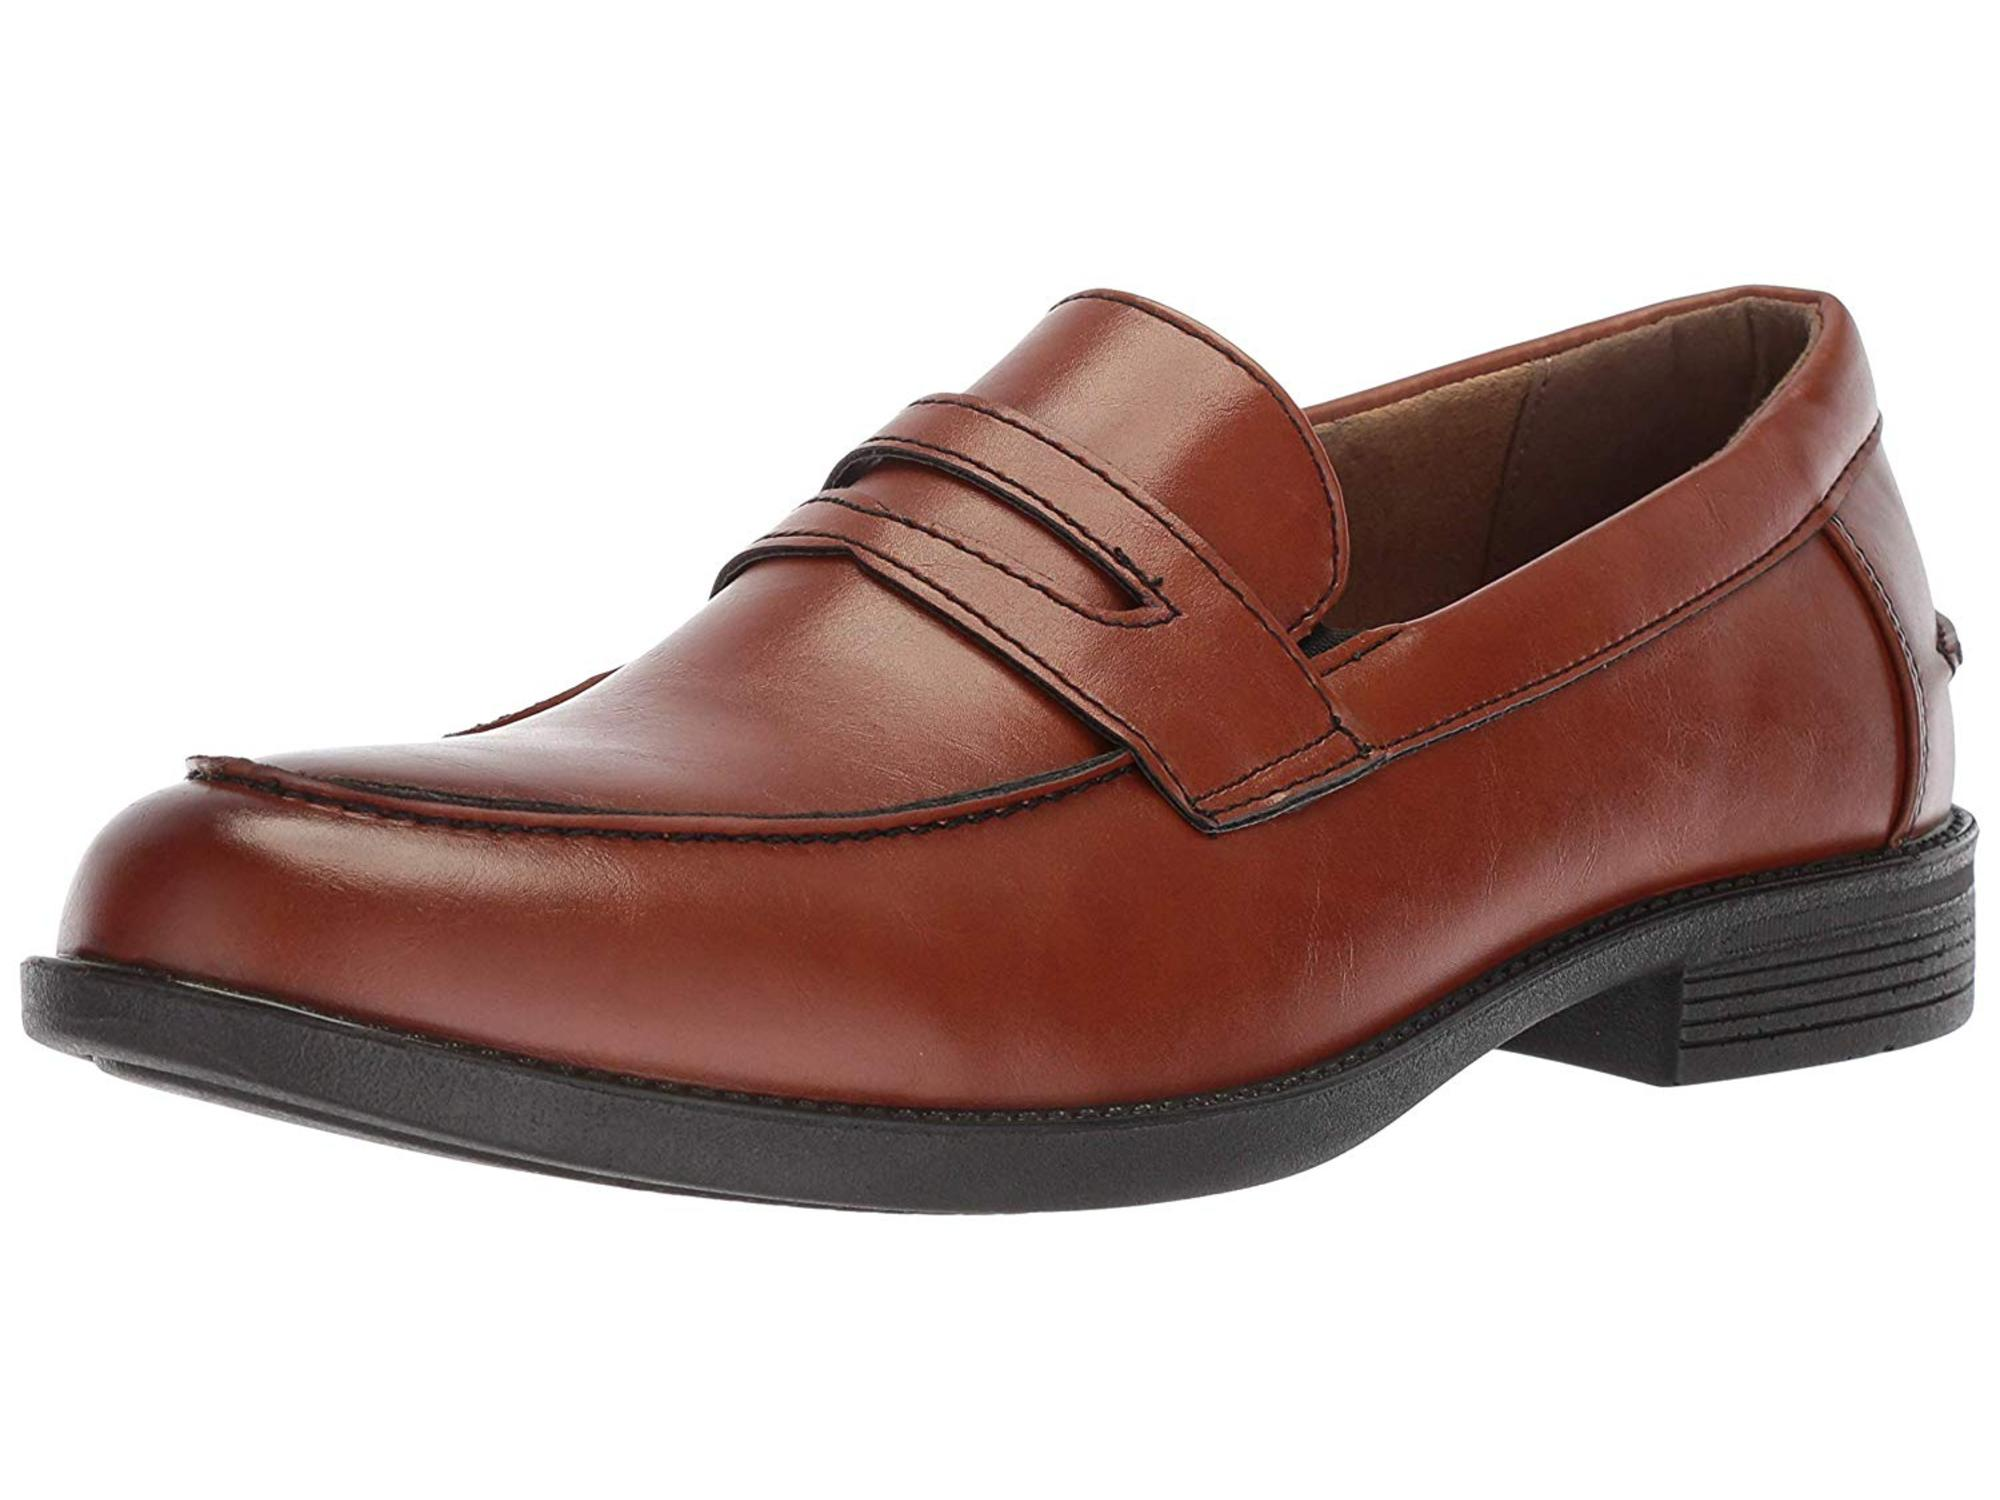 Deer Stags Mens Fund Leather Closed Toe